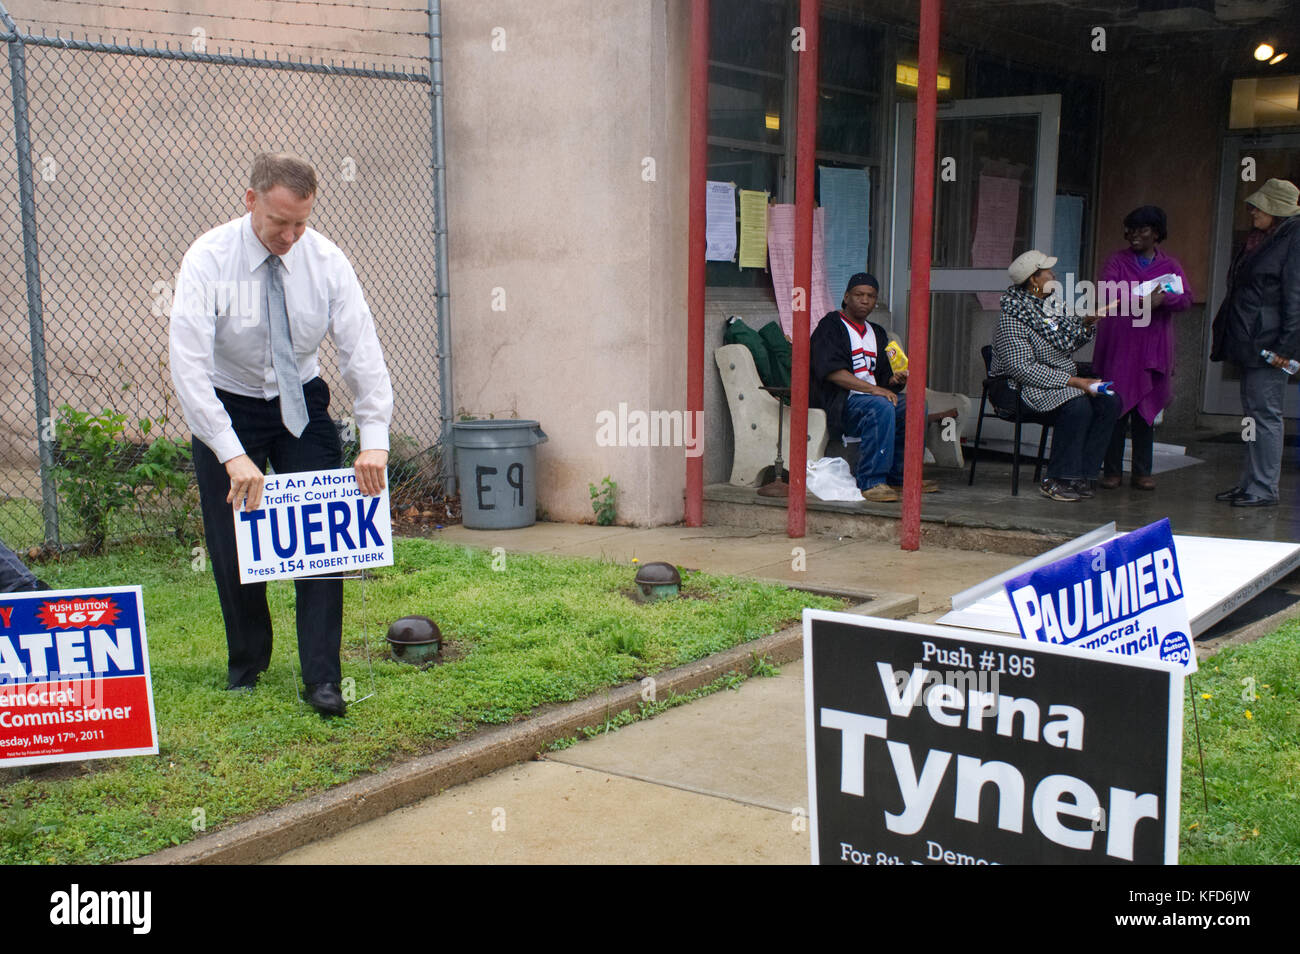 On Election Day a candidate running in local Primaries plants a lawn sing outside a polling station, in Philadelphia, - Stock Image